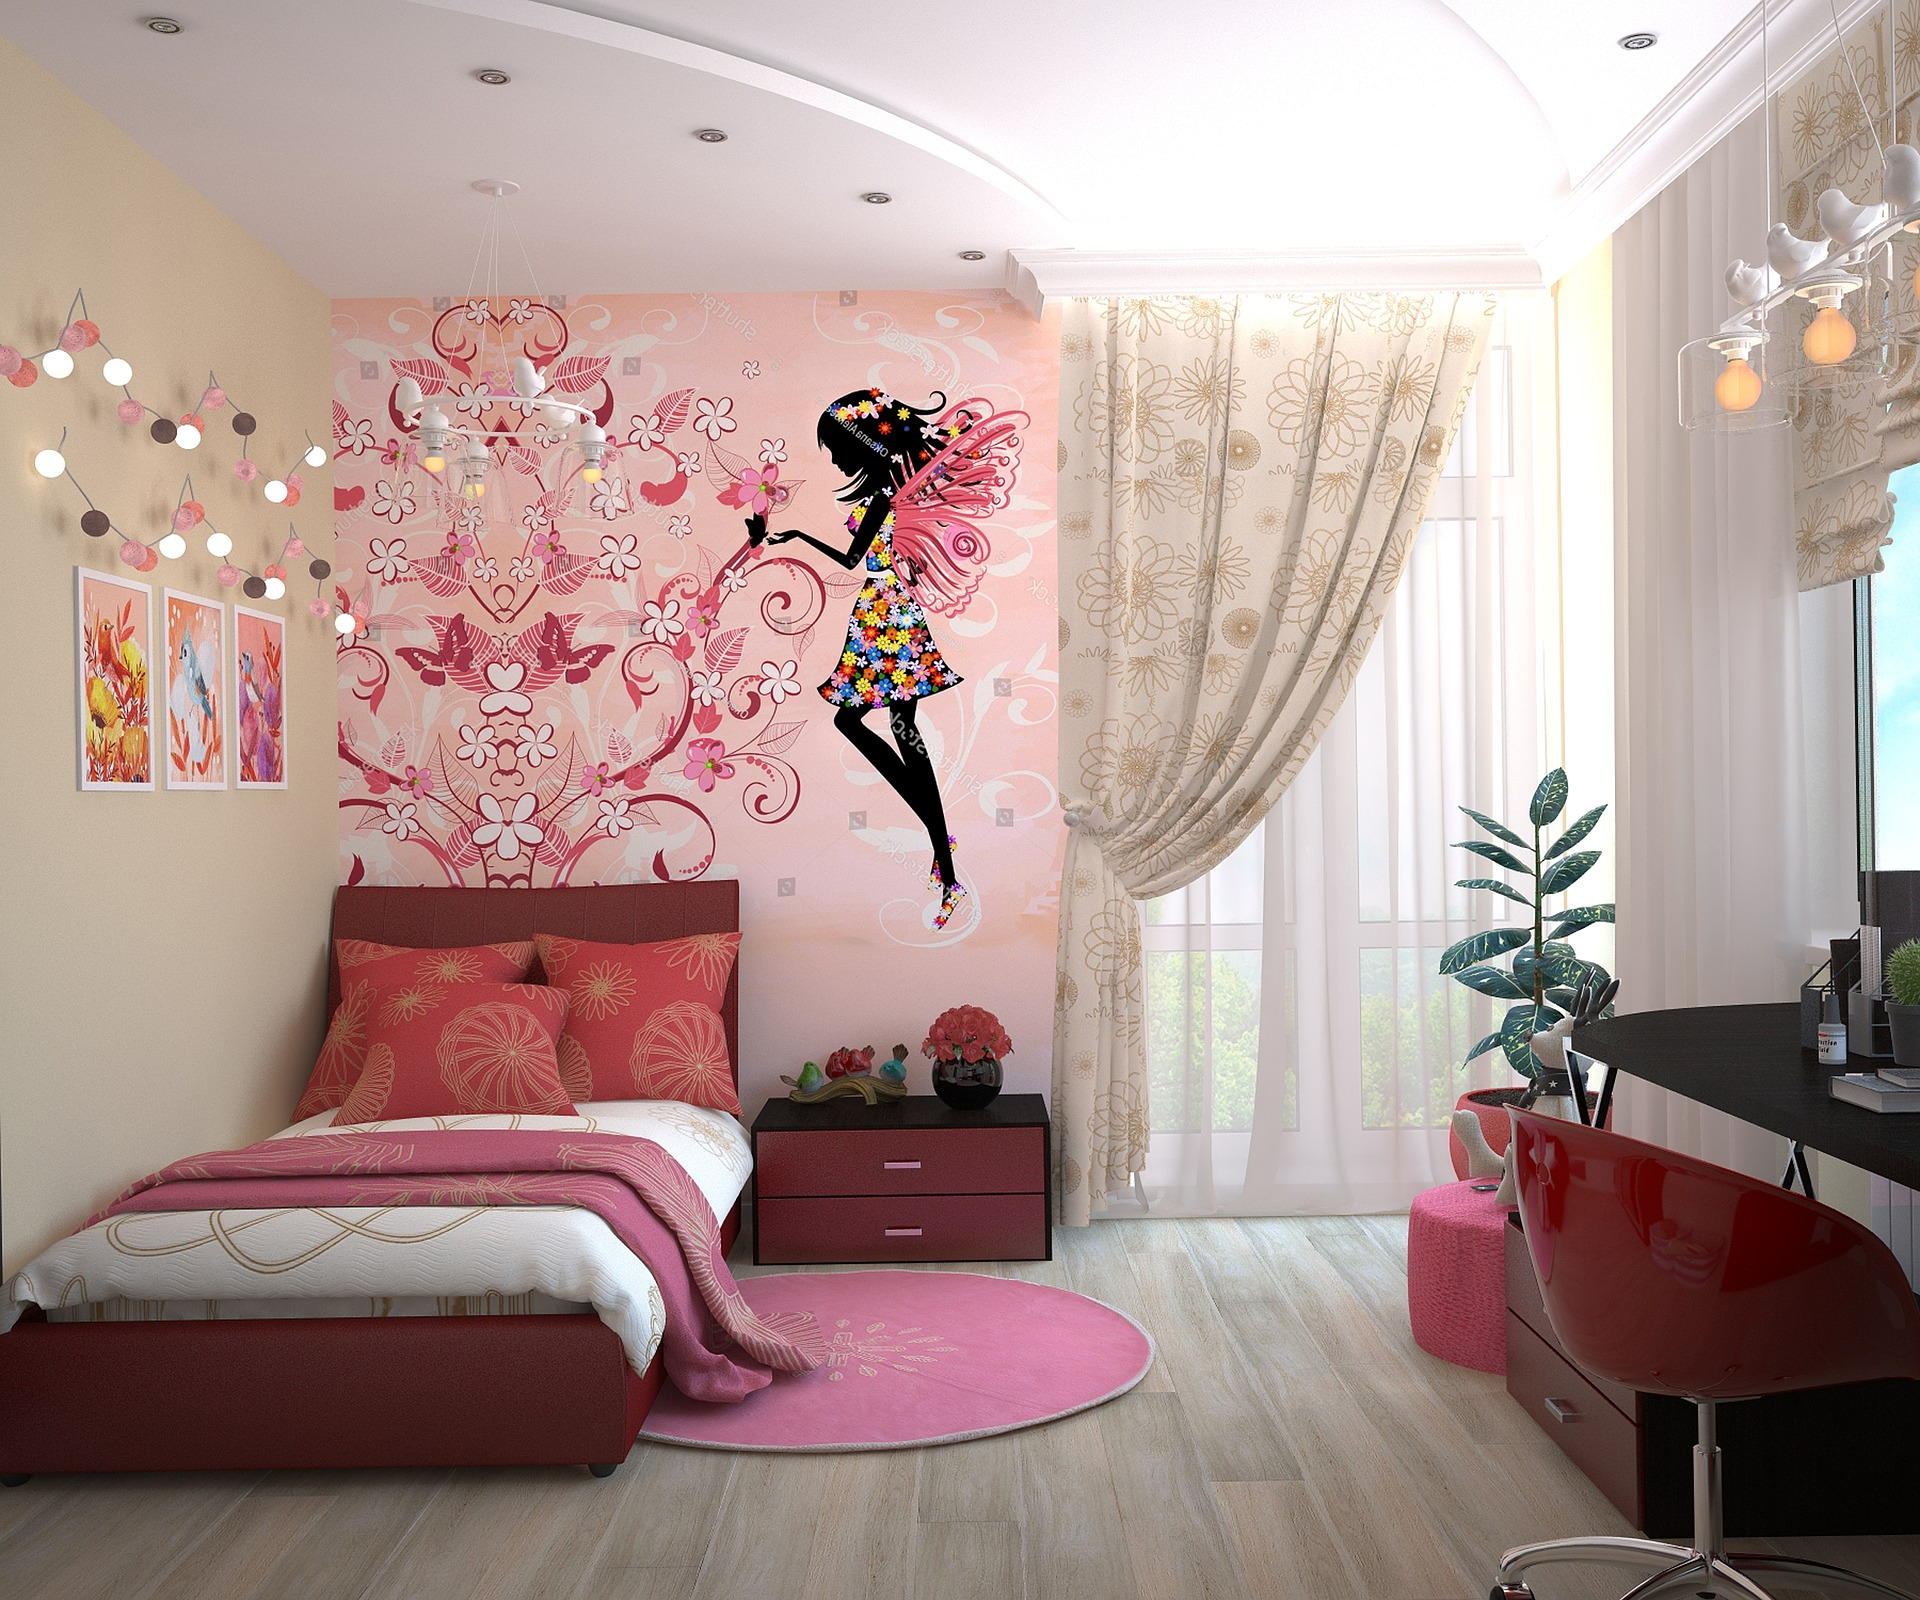 Upgrade Your Kid's Room These Holidays